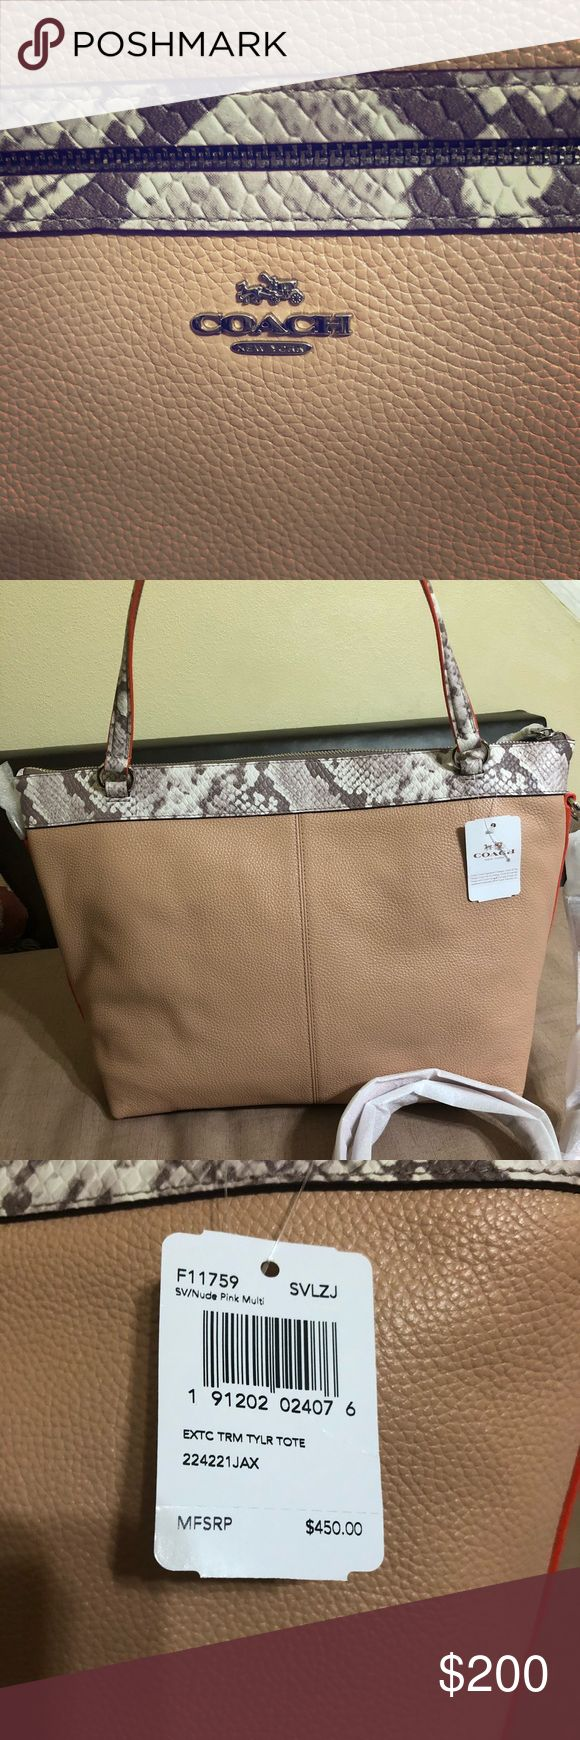 Coach F11759 Taylor Tote Nude Pink Leather Satchel Authentic Coach Embossed Leather-Nude/ pink Color/Exotic Embossed Leather Trim in Python Print . NEW NEVER USED ! Coach Bags Totes